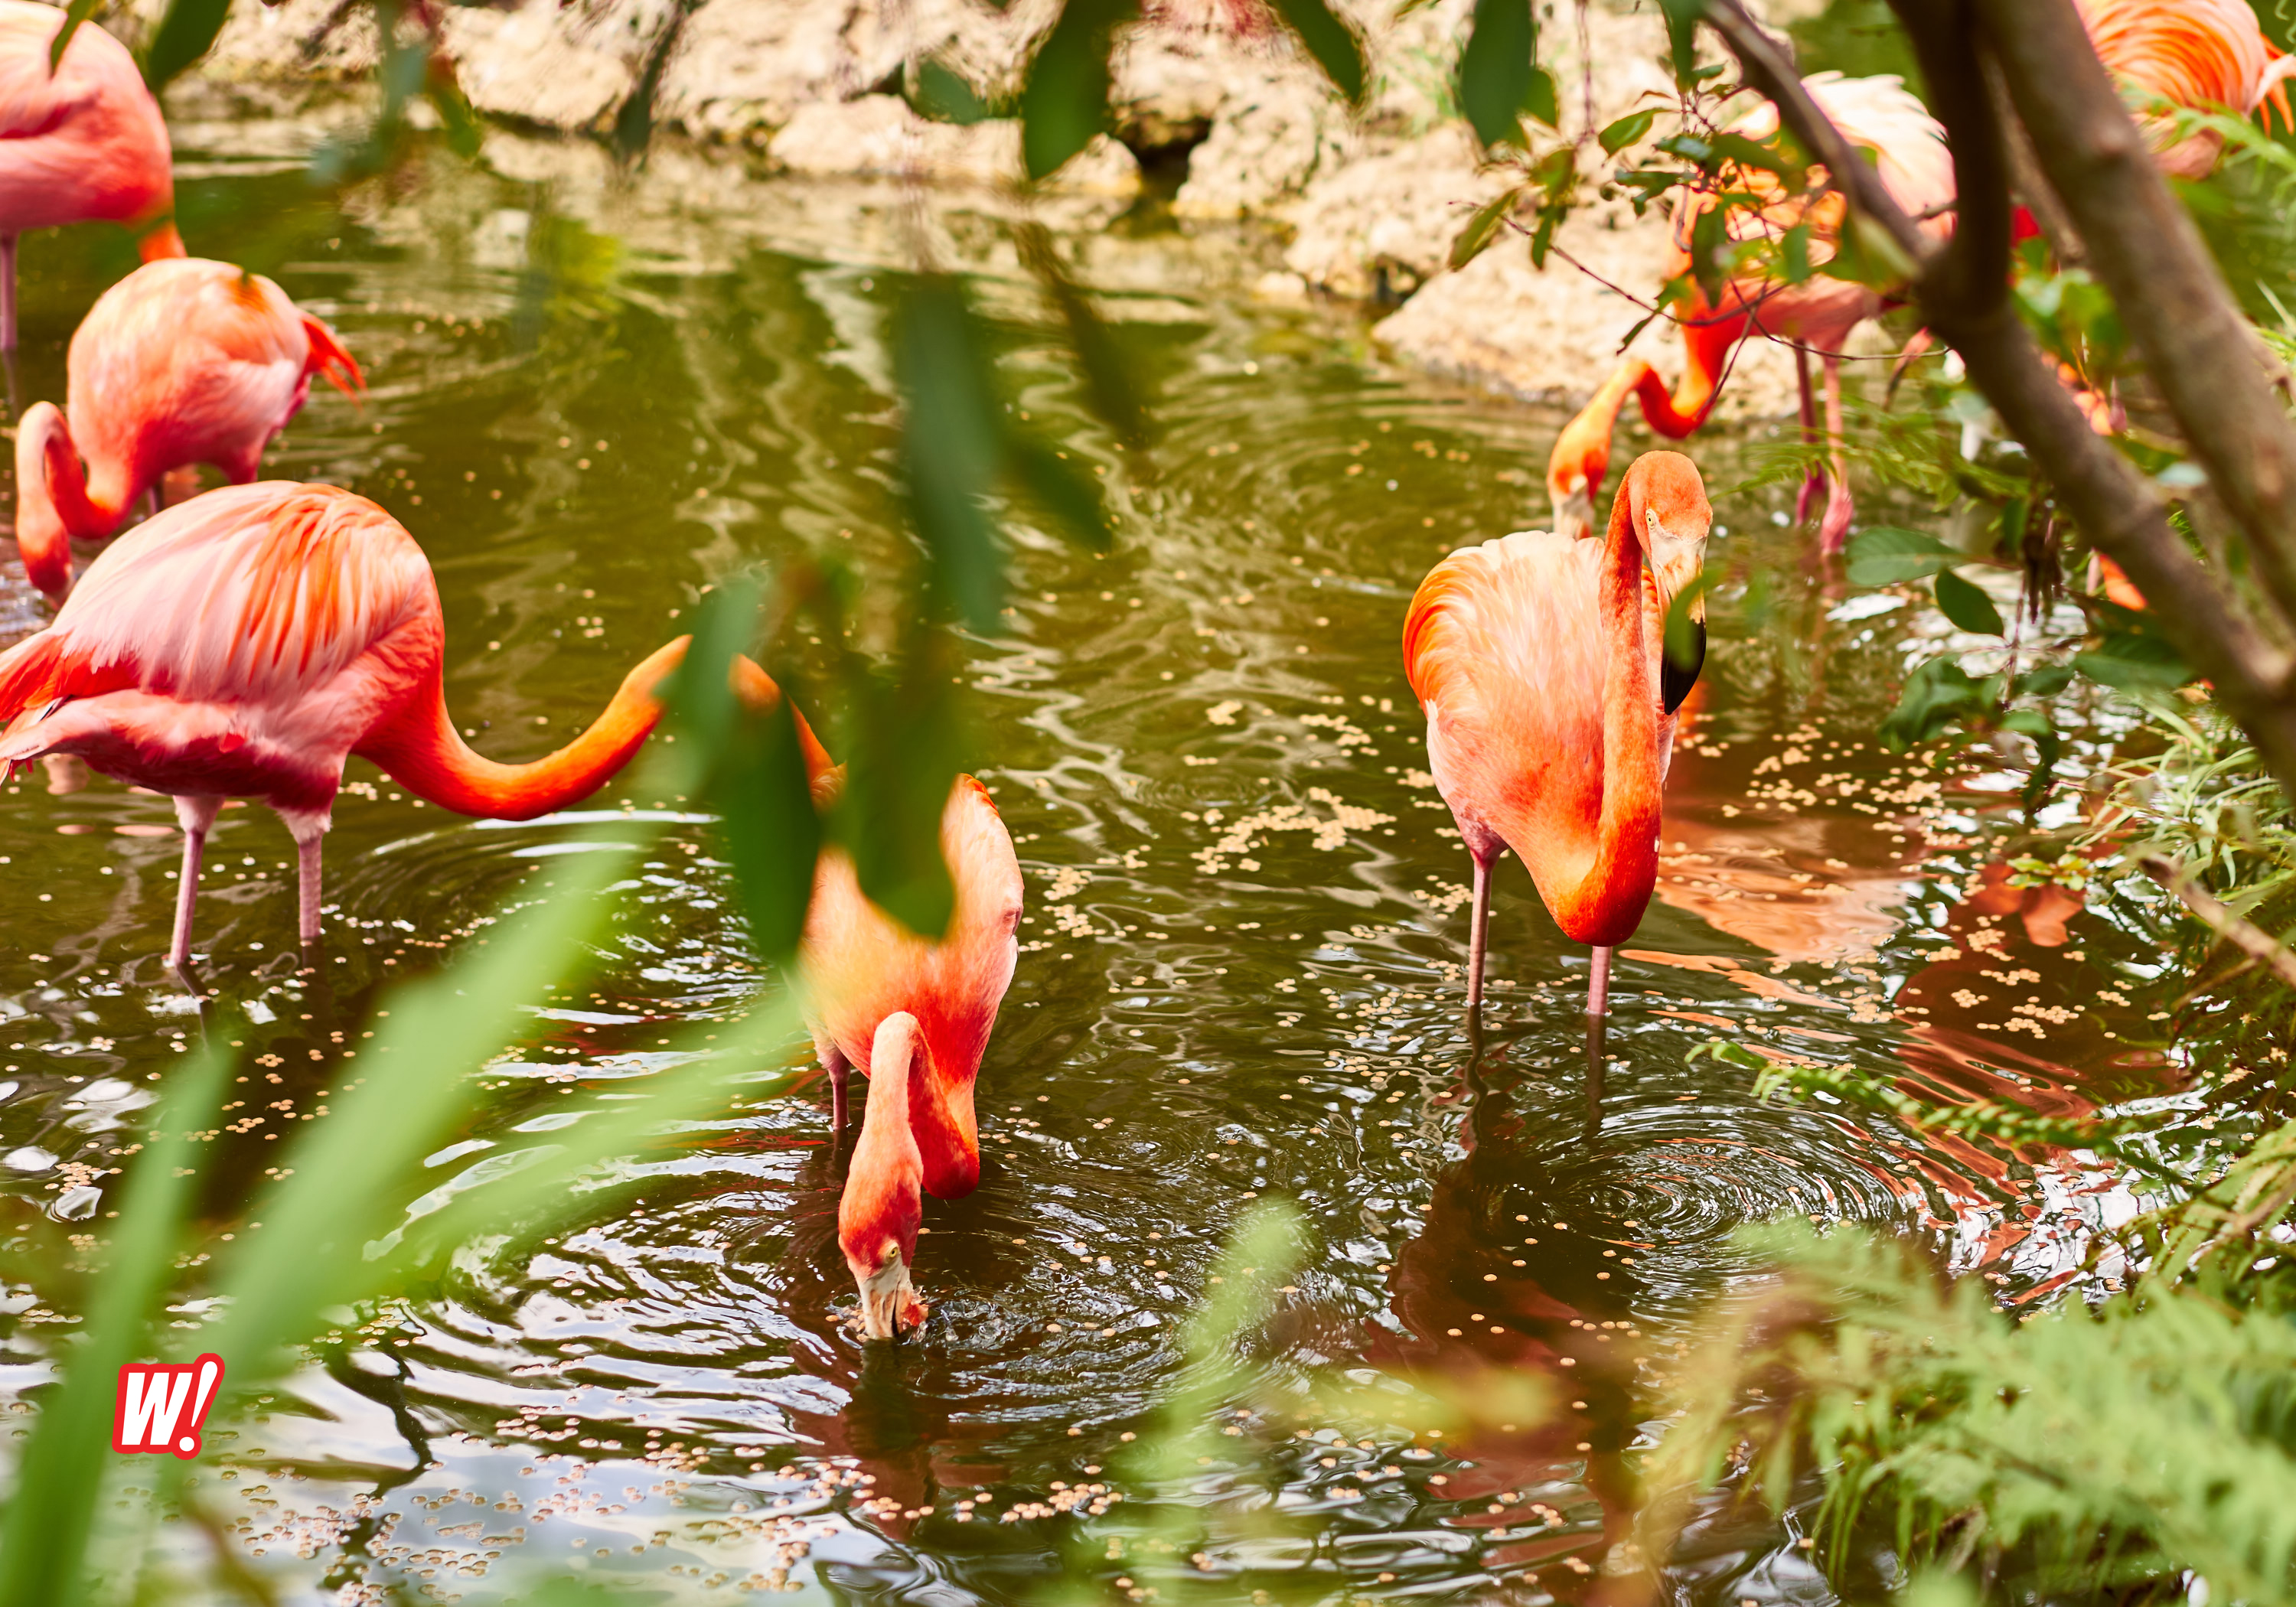 Flamingo_Gardens_Davie_Eagle_Owo_Hawk_Birds_cages_wordintown_copyright_Jayromero_photography_davie_FL-flamingo-group